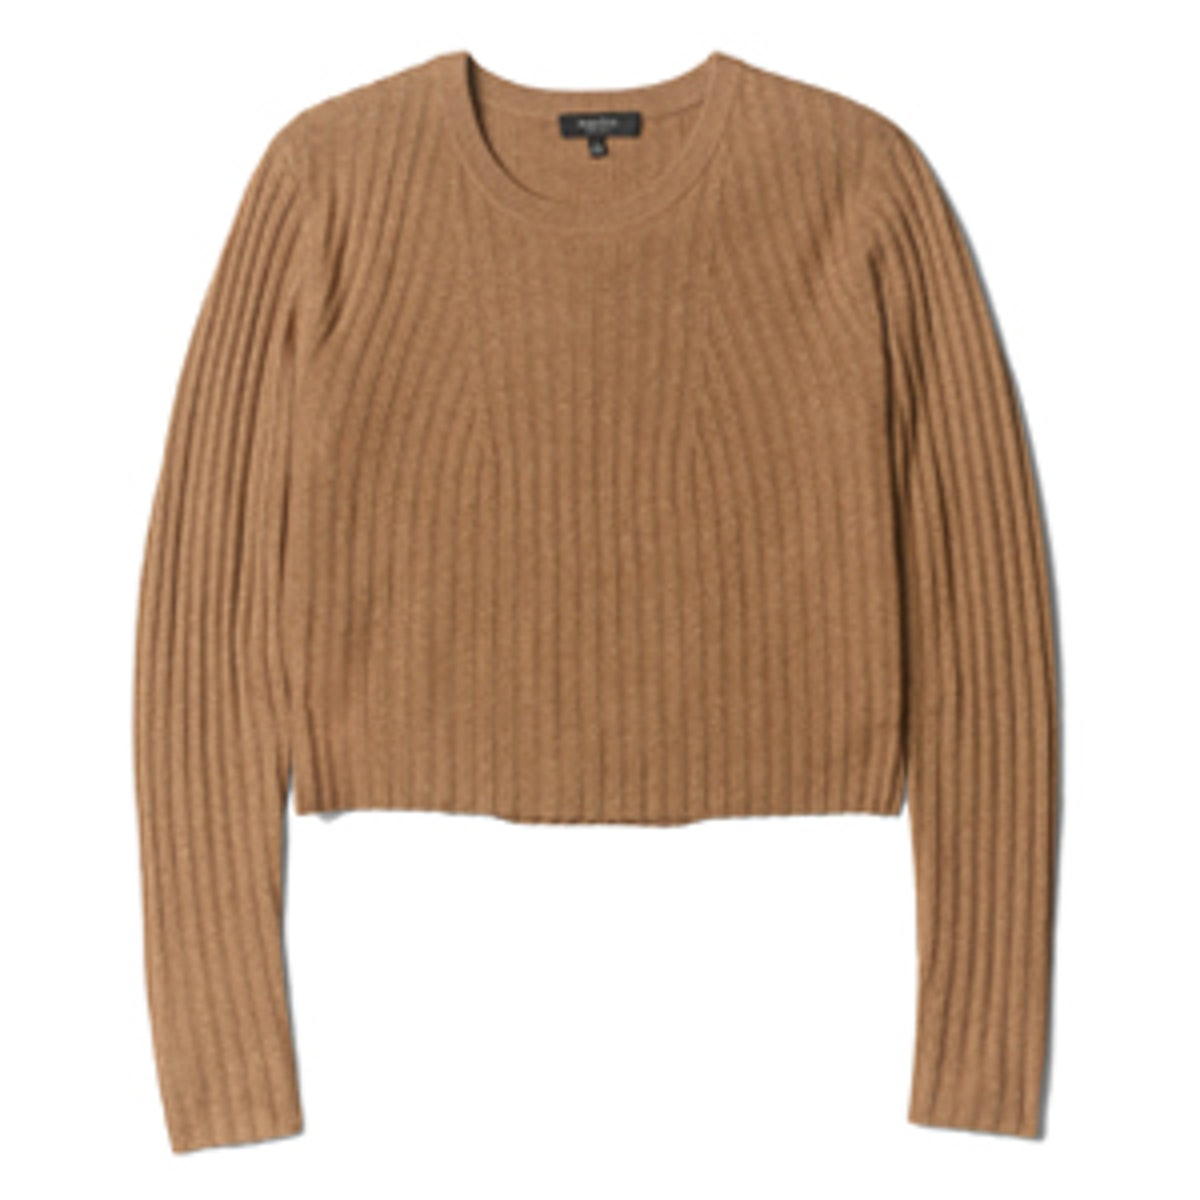 Nathaniel Sweater In Camel